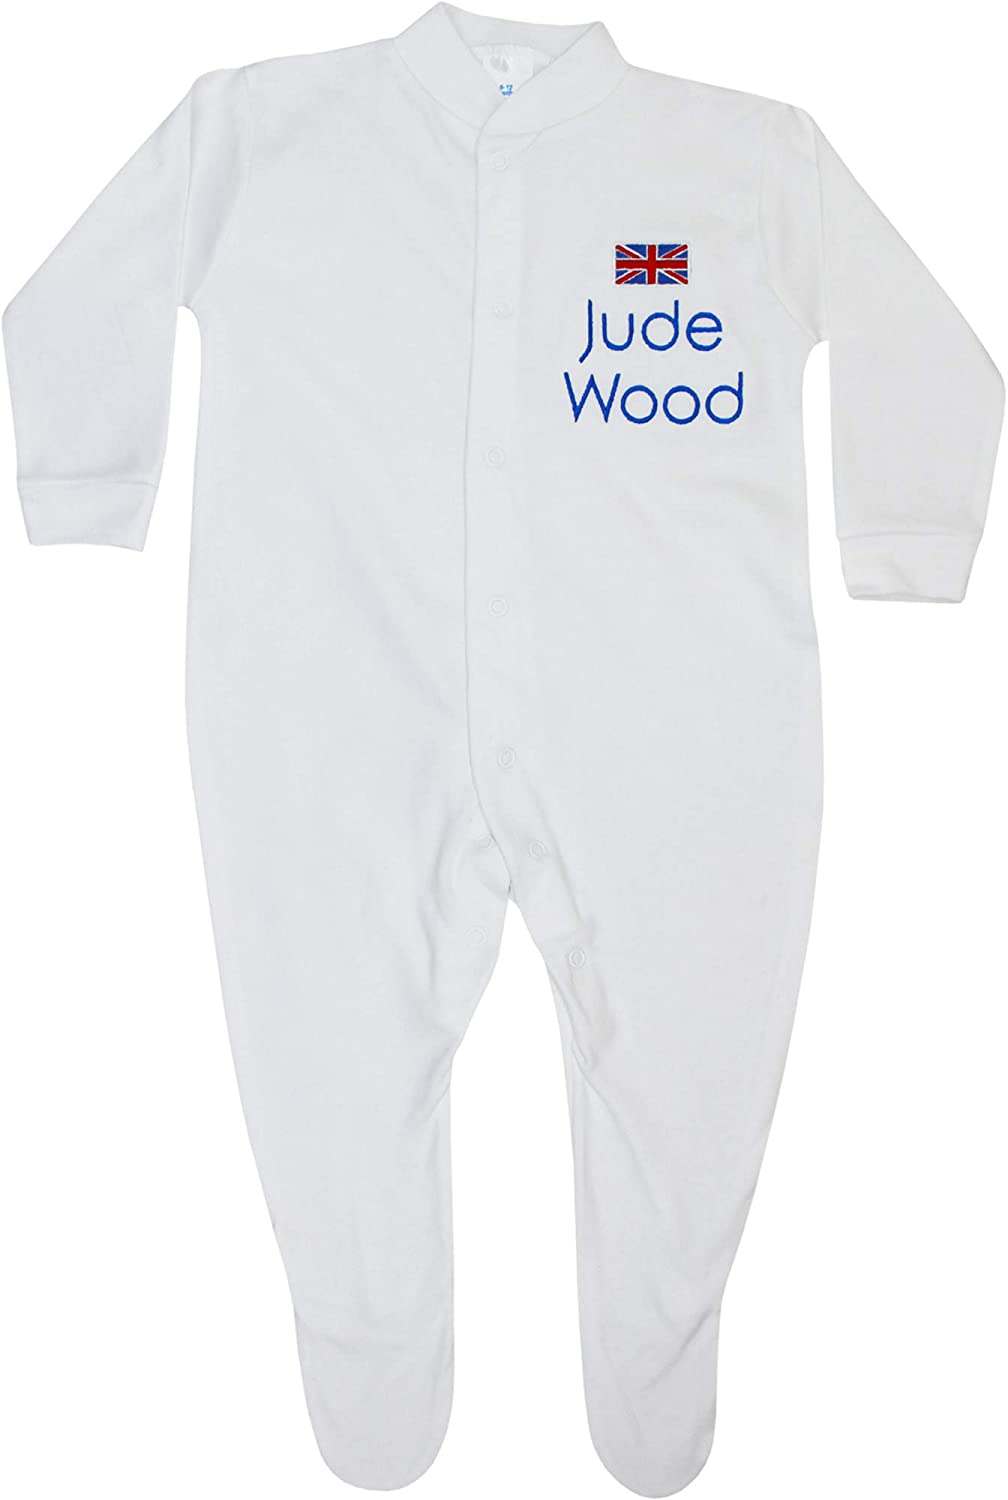 TeddyTs Baby Personalised White Great Britain All in One Sleepsuit